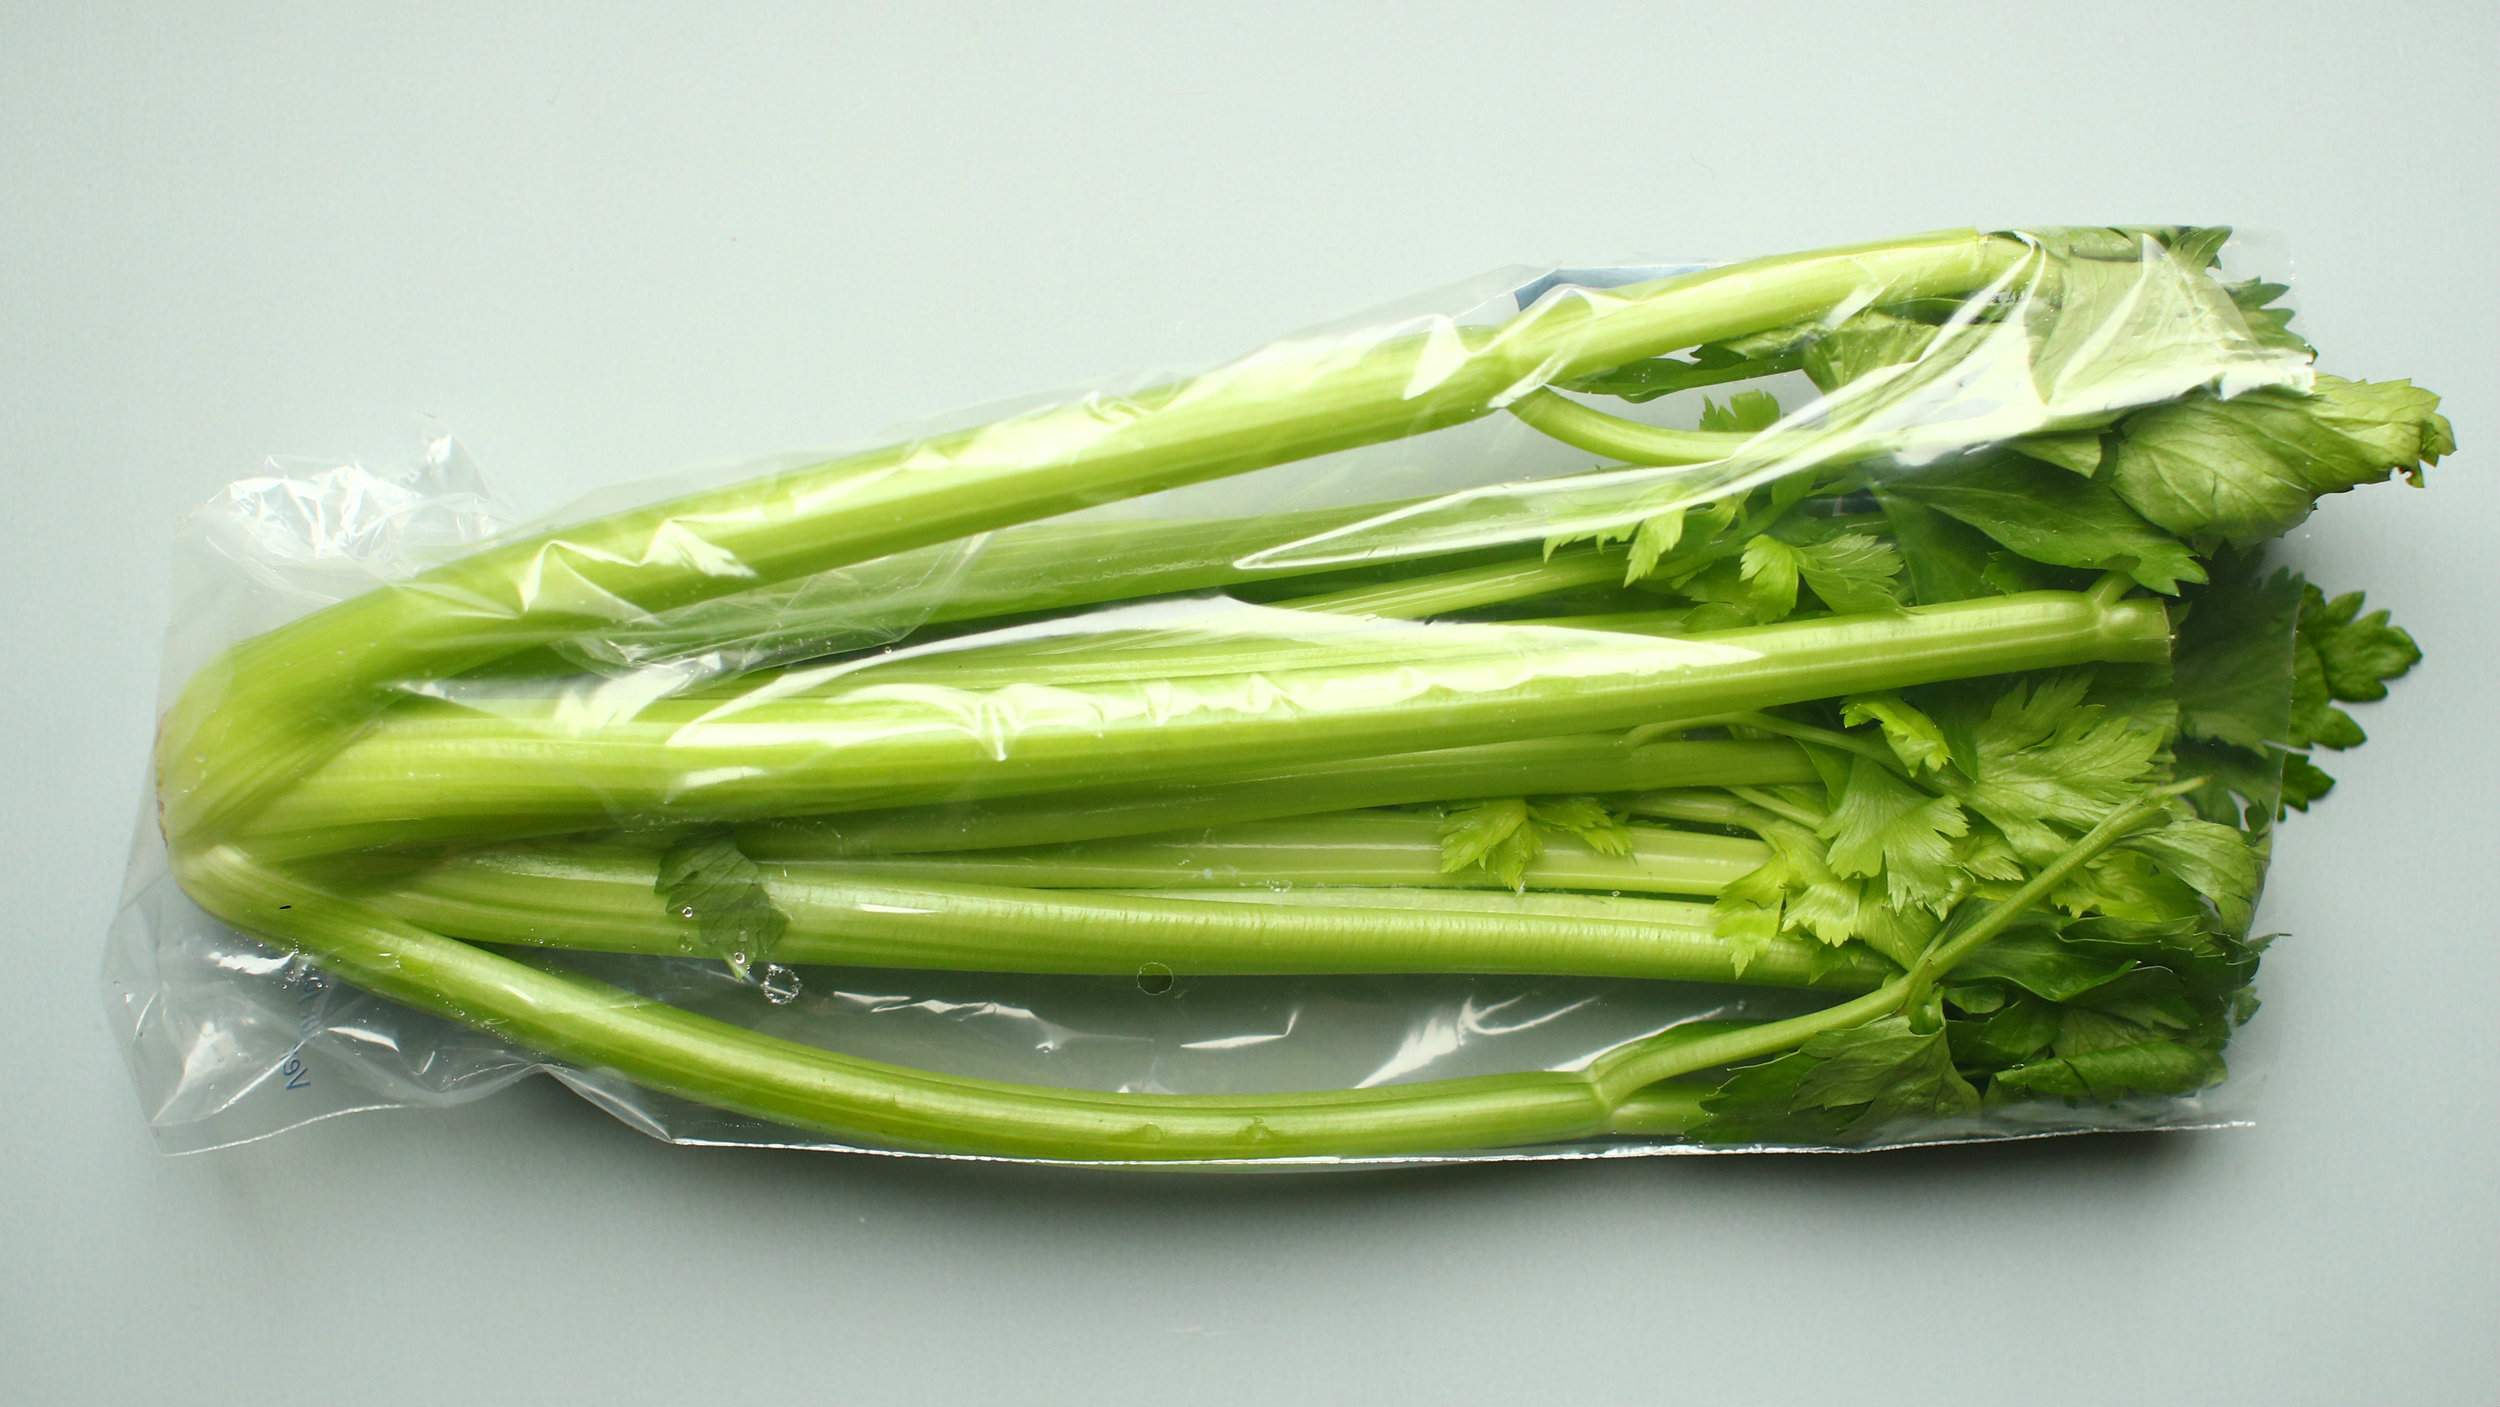 Celery juice is a wellness trend thanks to the Medical Medium — Quartzy